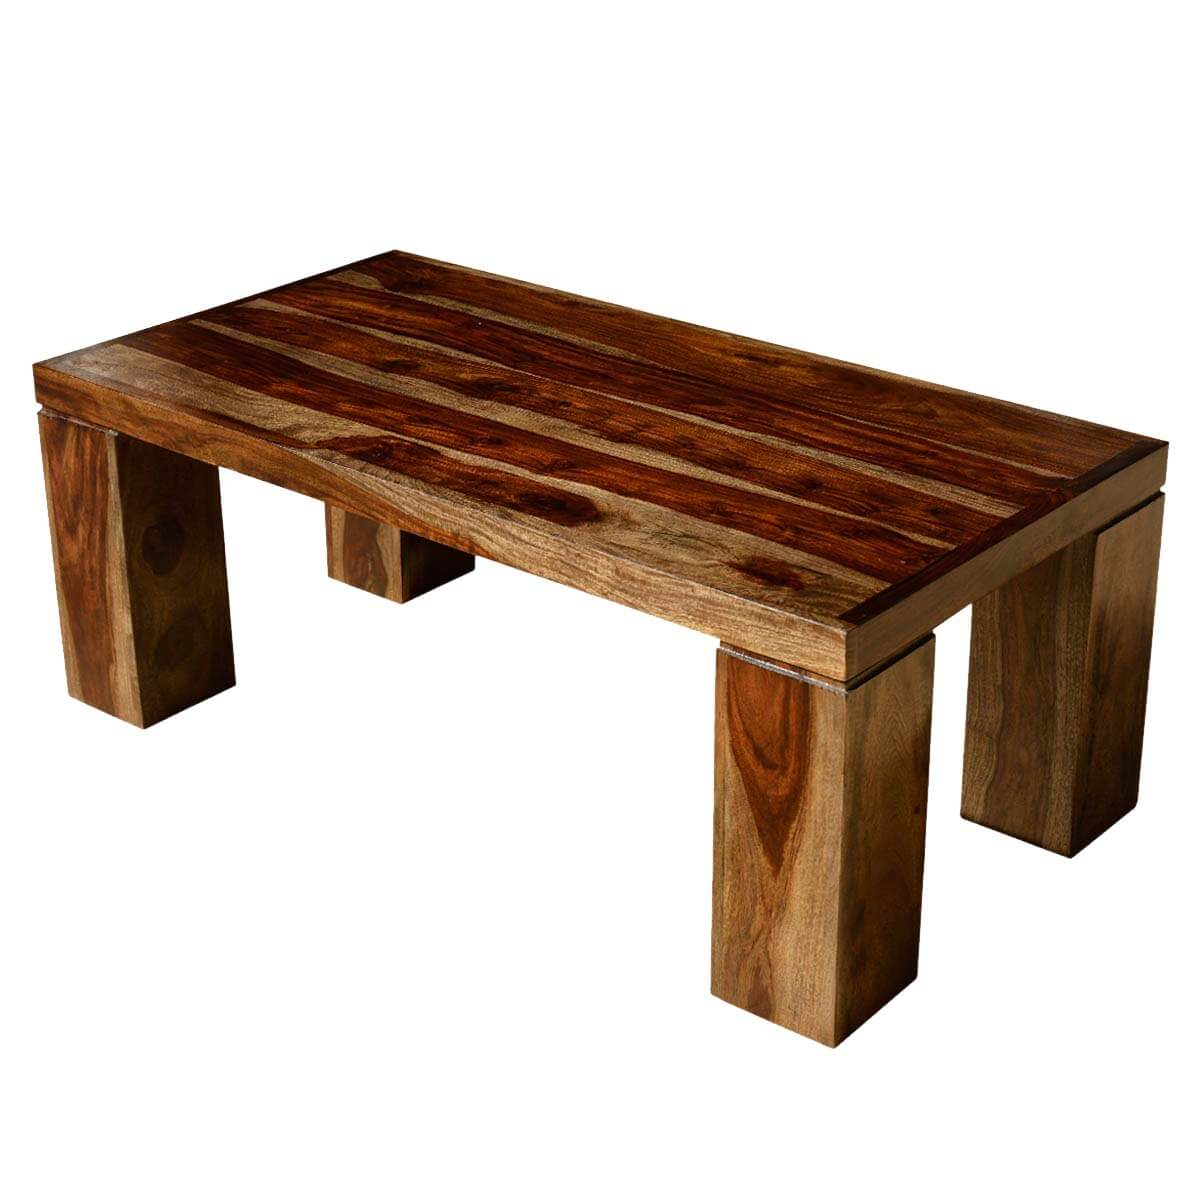 Contemporary solid wood espresso coffee table w block legs for Modern wooden coffee tables